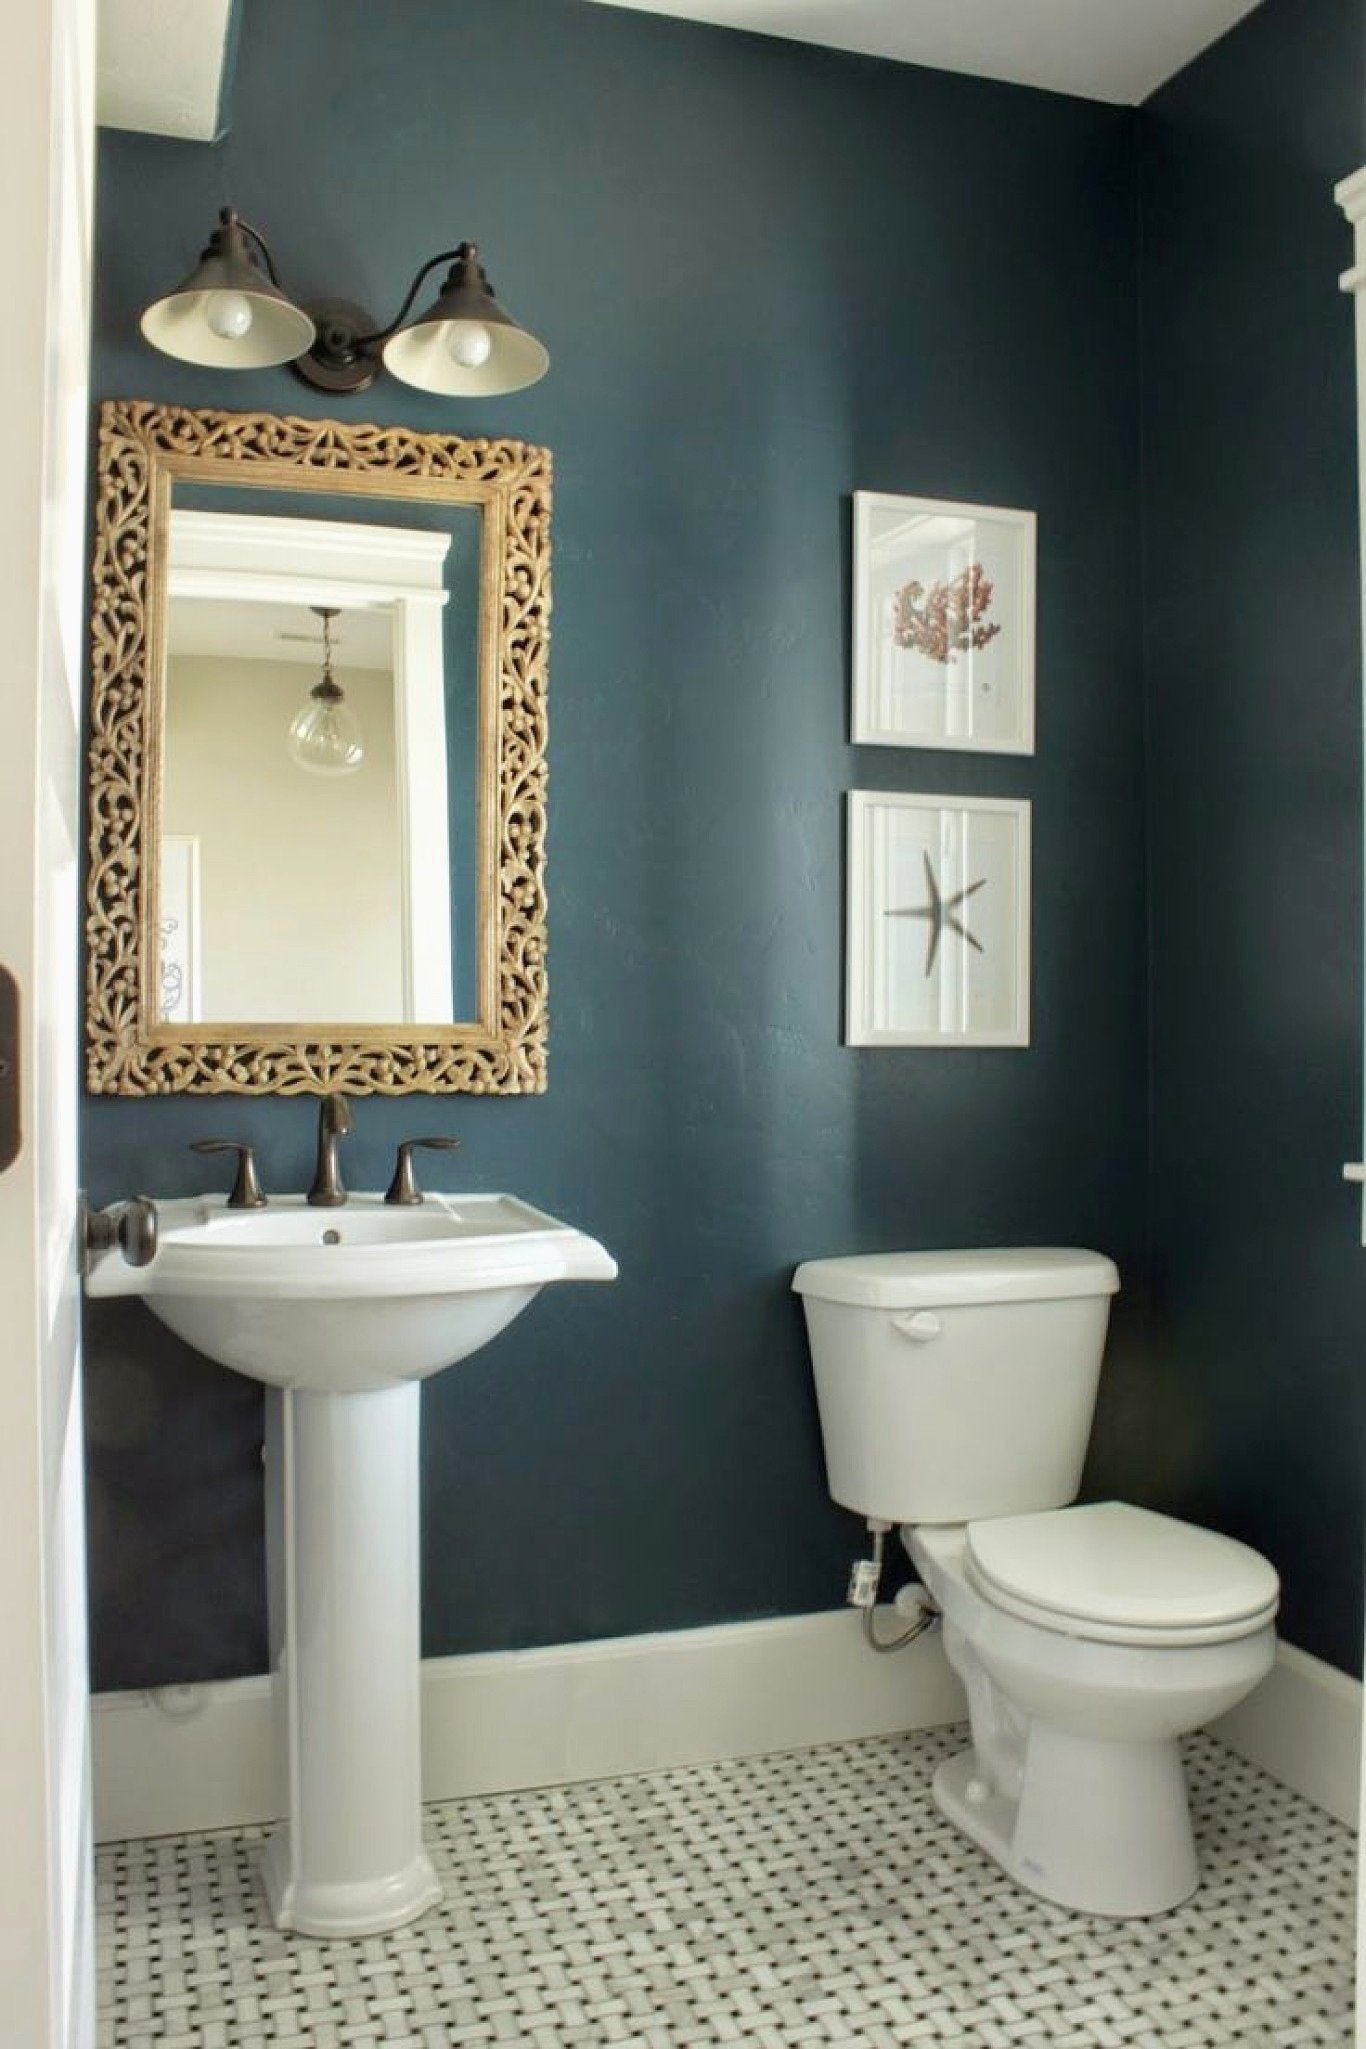 10 Pretty Paint Ideas For Small Bathrooms 26 luxury dark paint in small bathroom jose style and design 2021